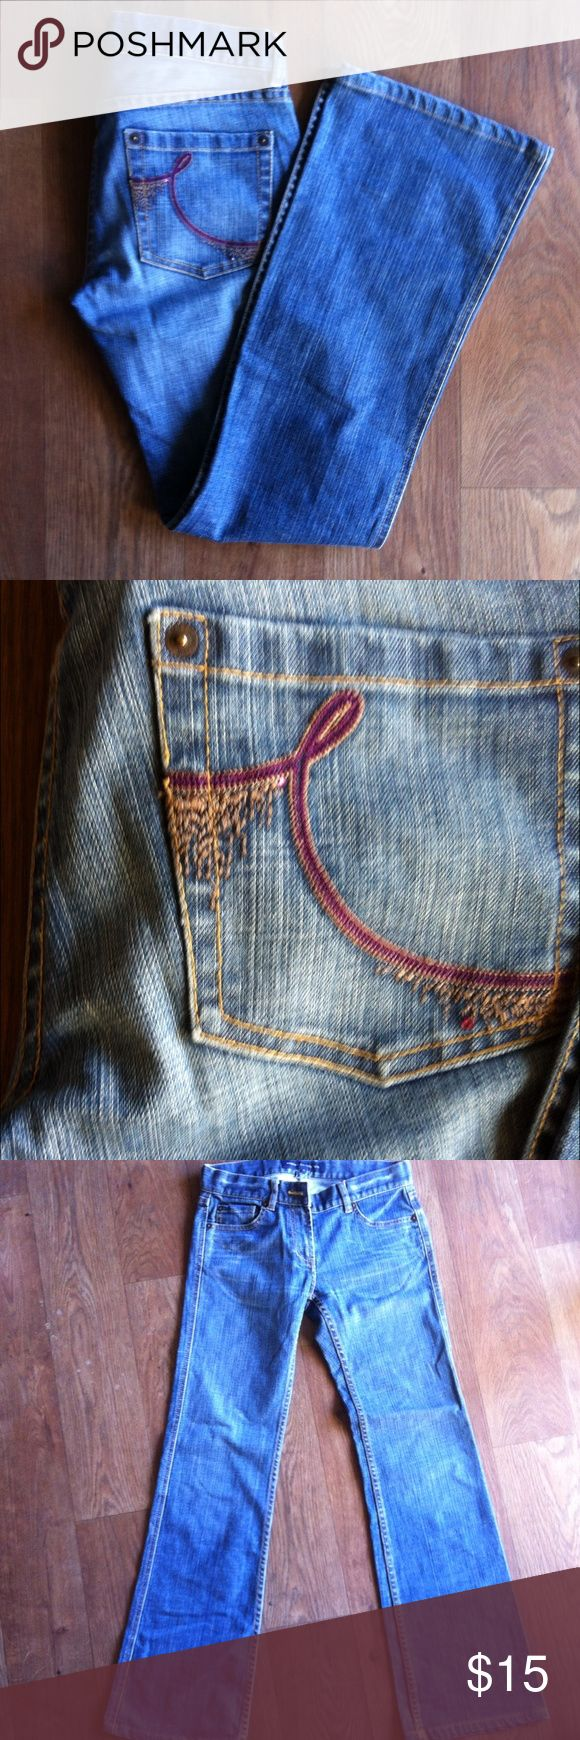 French Connection Jeans Size 4 bootcut French Connection Jeans with decorative purple stitching and rhinestones on back pockets. Great condition, no noticeable wear. French Connection Jeans Boot Cut